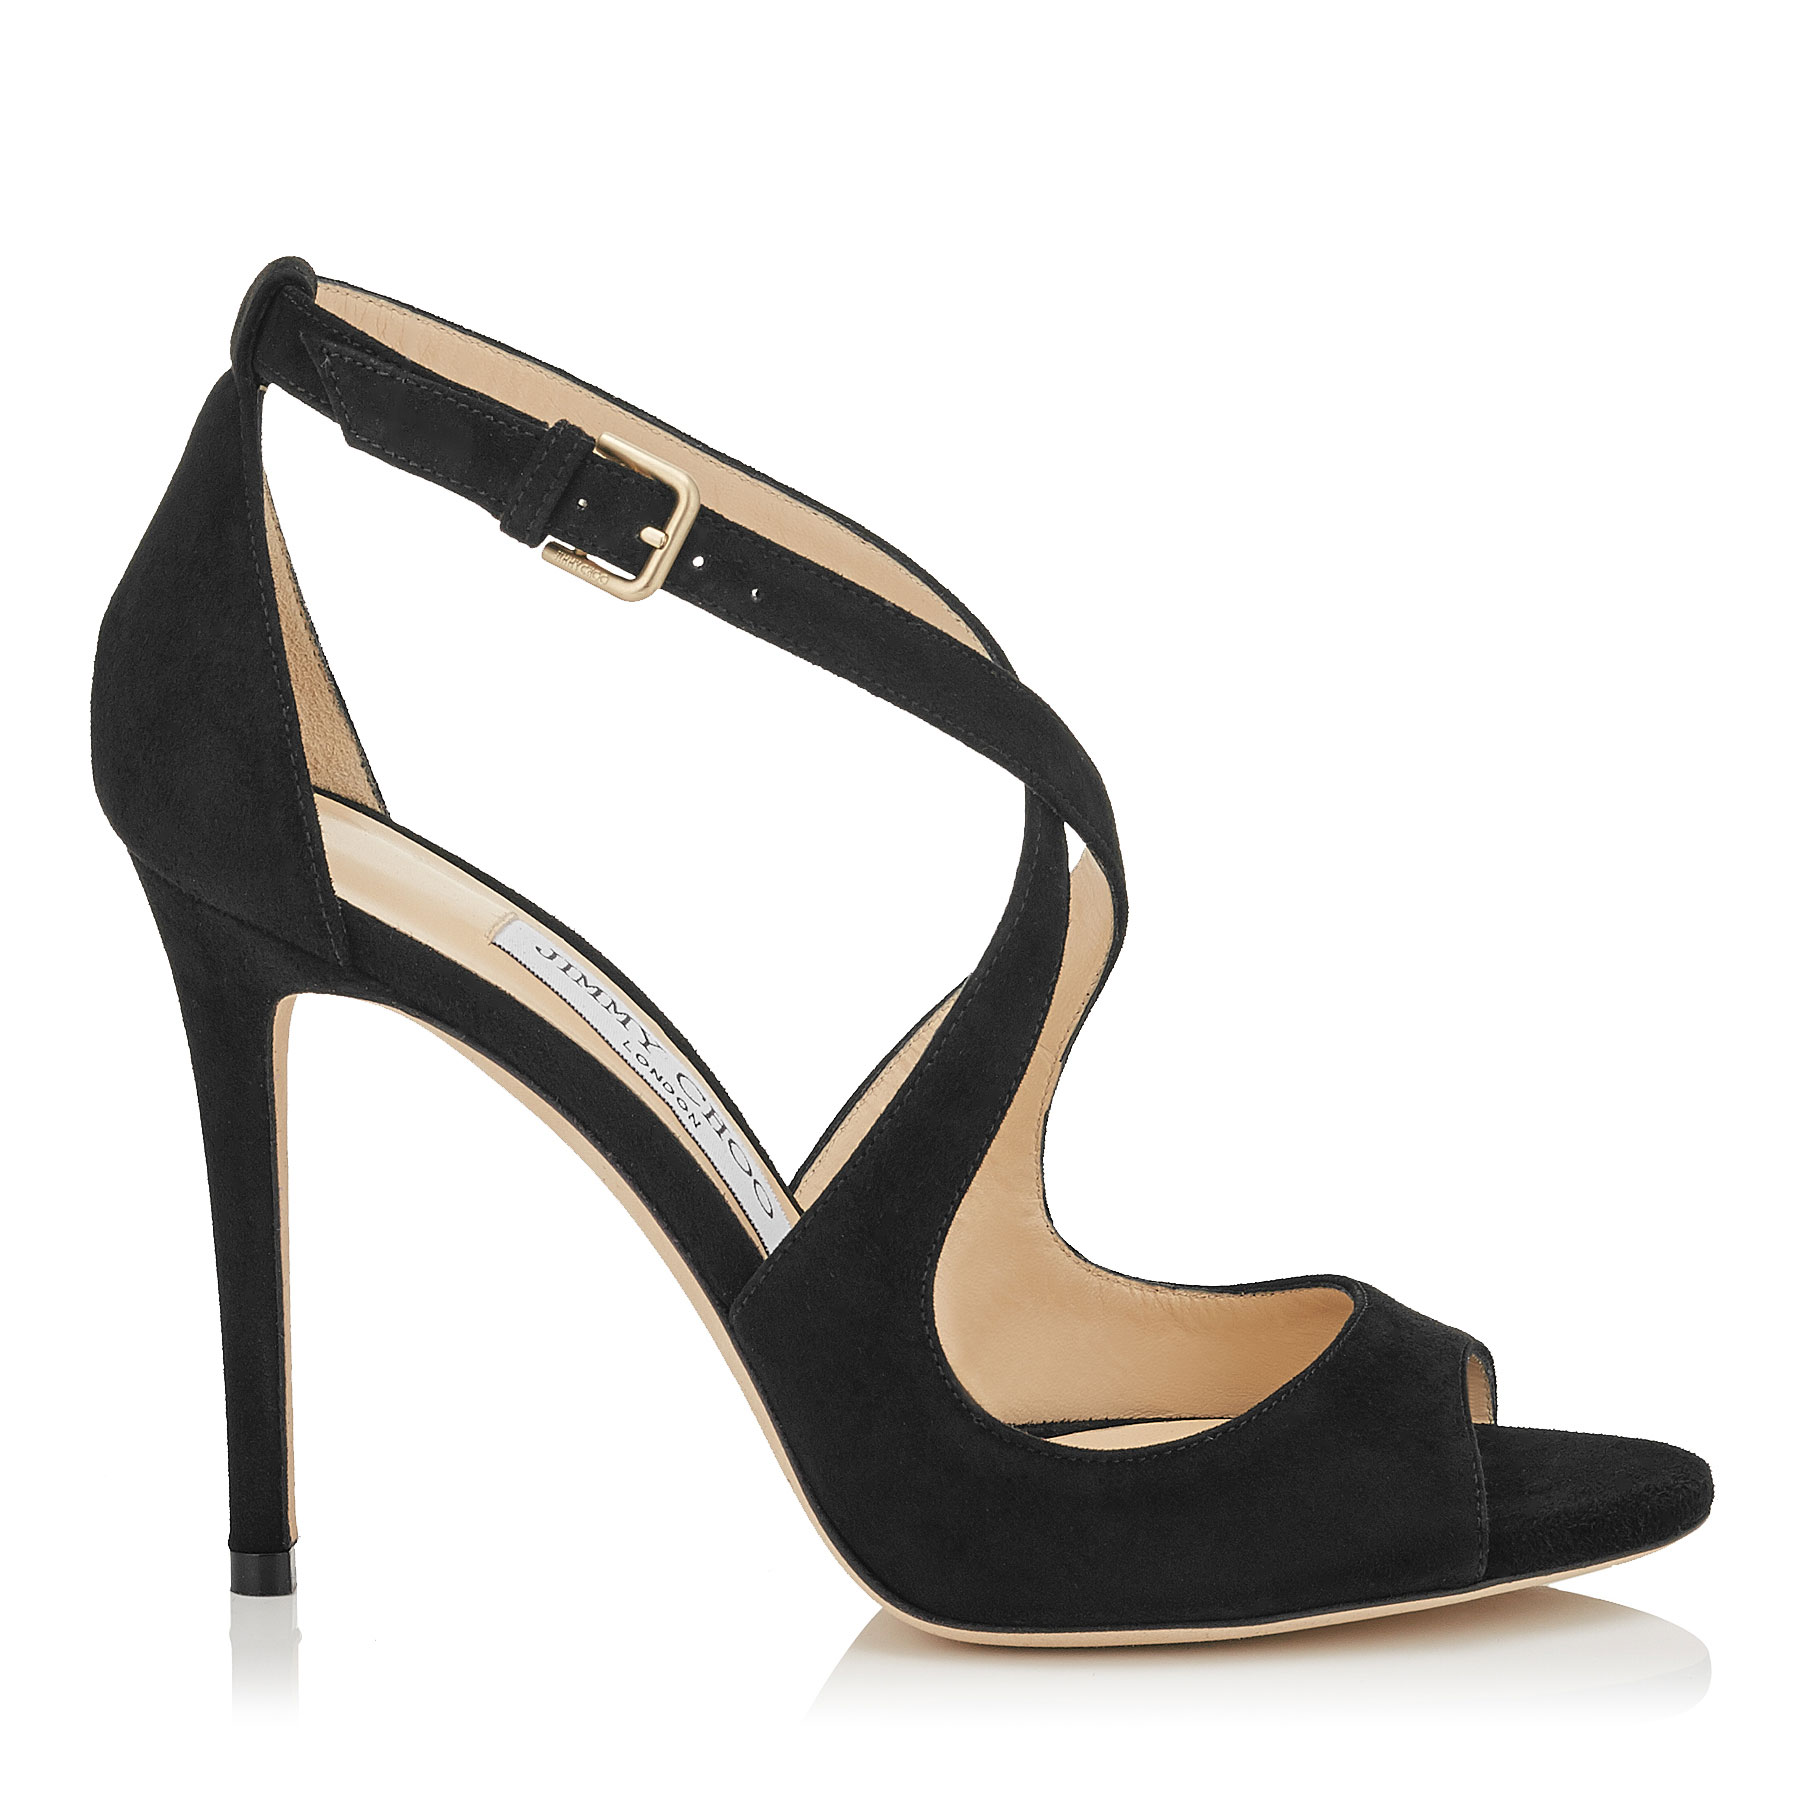 EMILY 100 Black Suede Sandals by Jimmy Choo